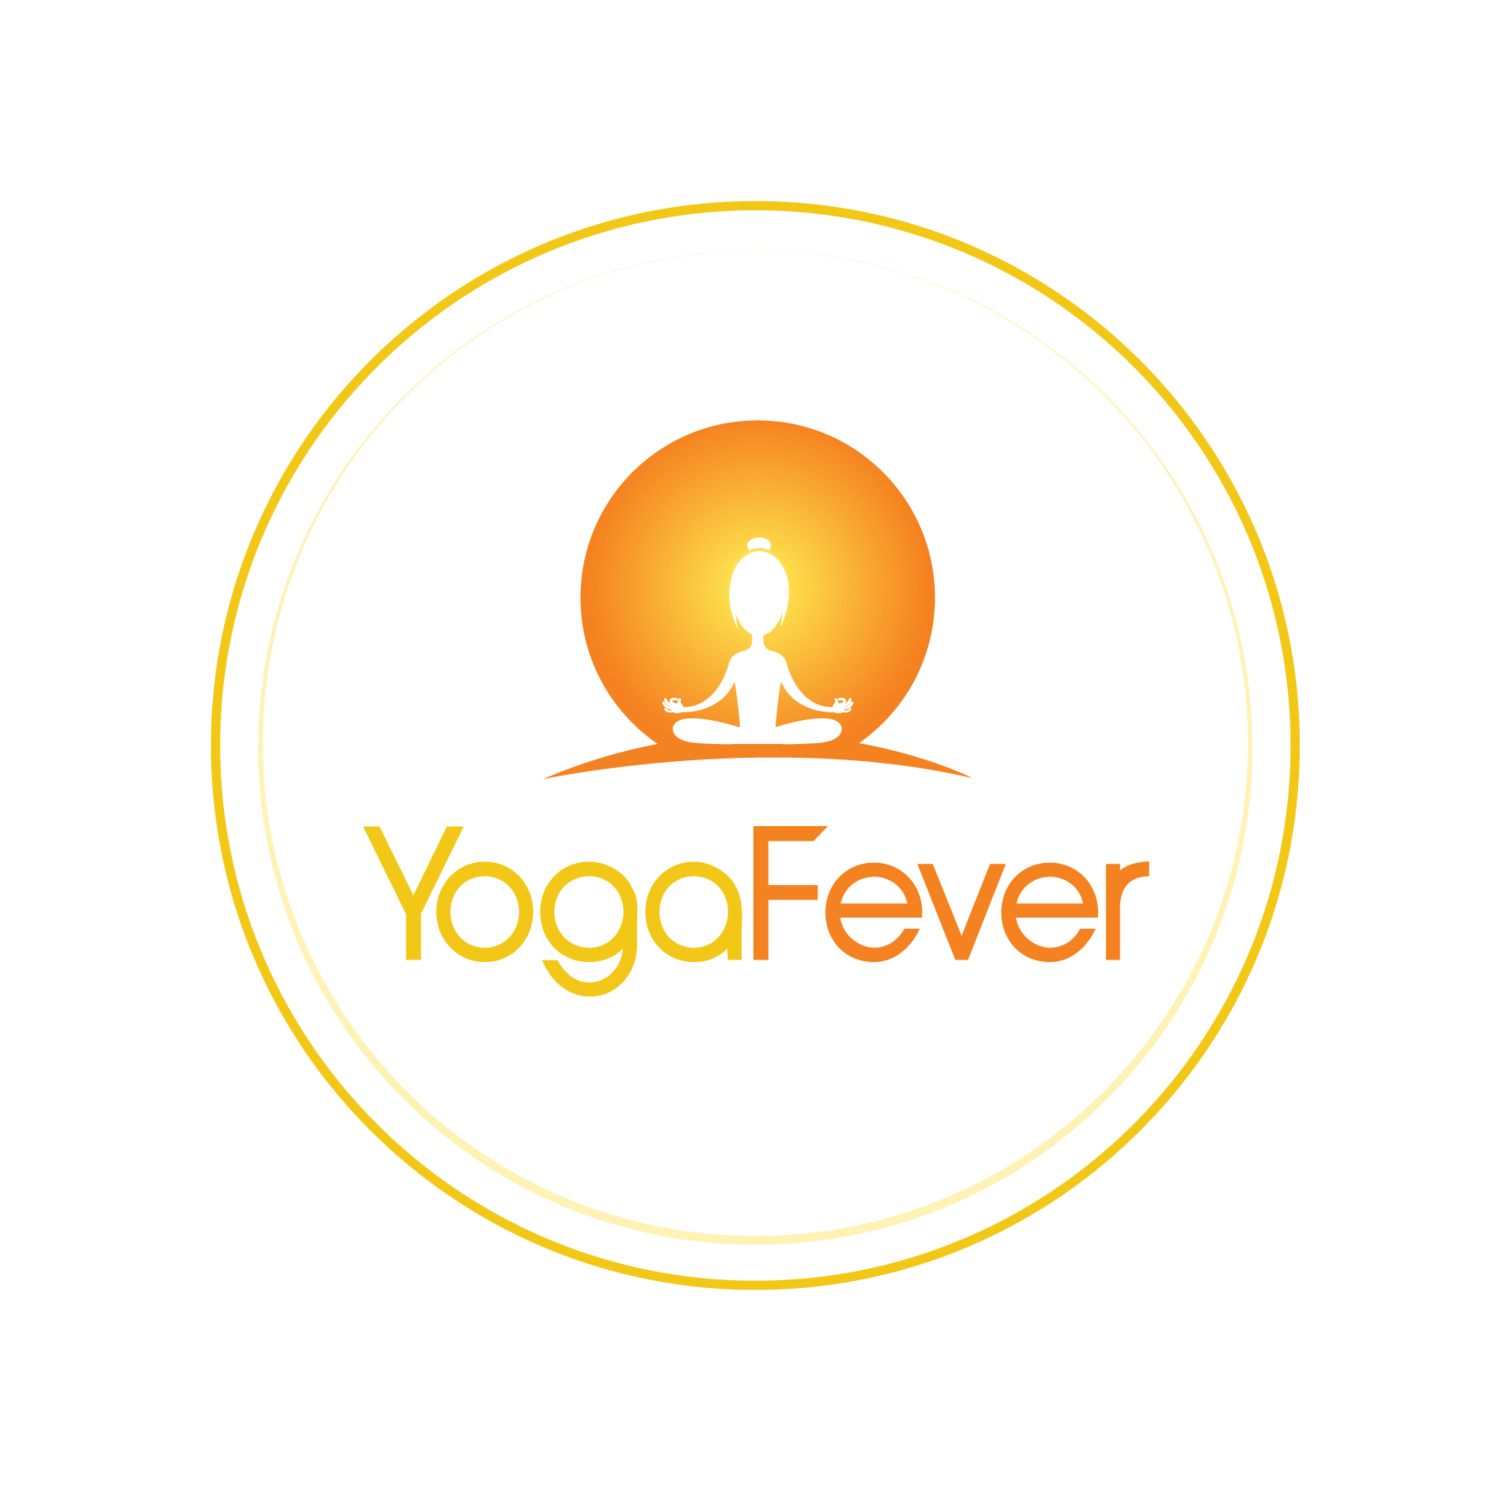 Hot Yoga Studio, Grand Rapids, MI - Yoga Fever